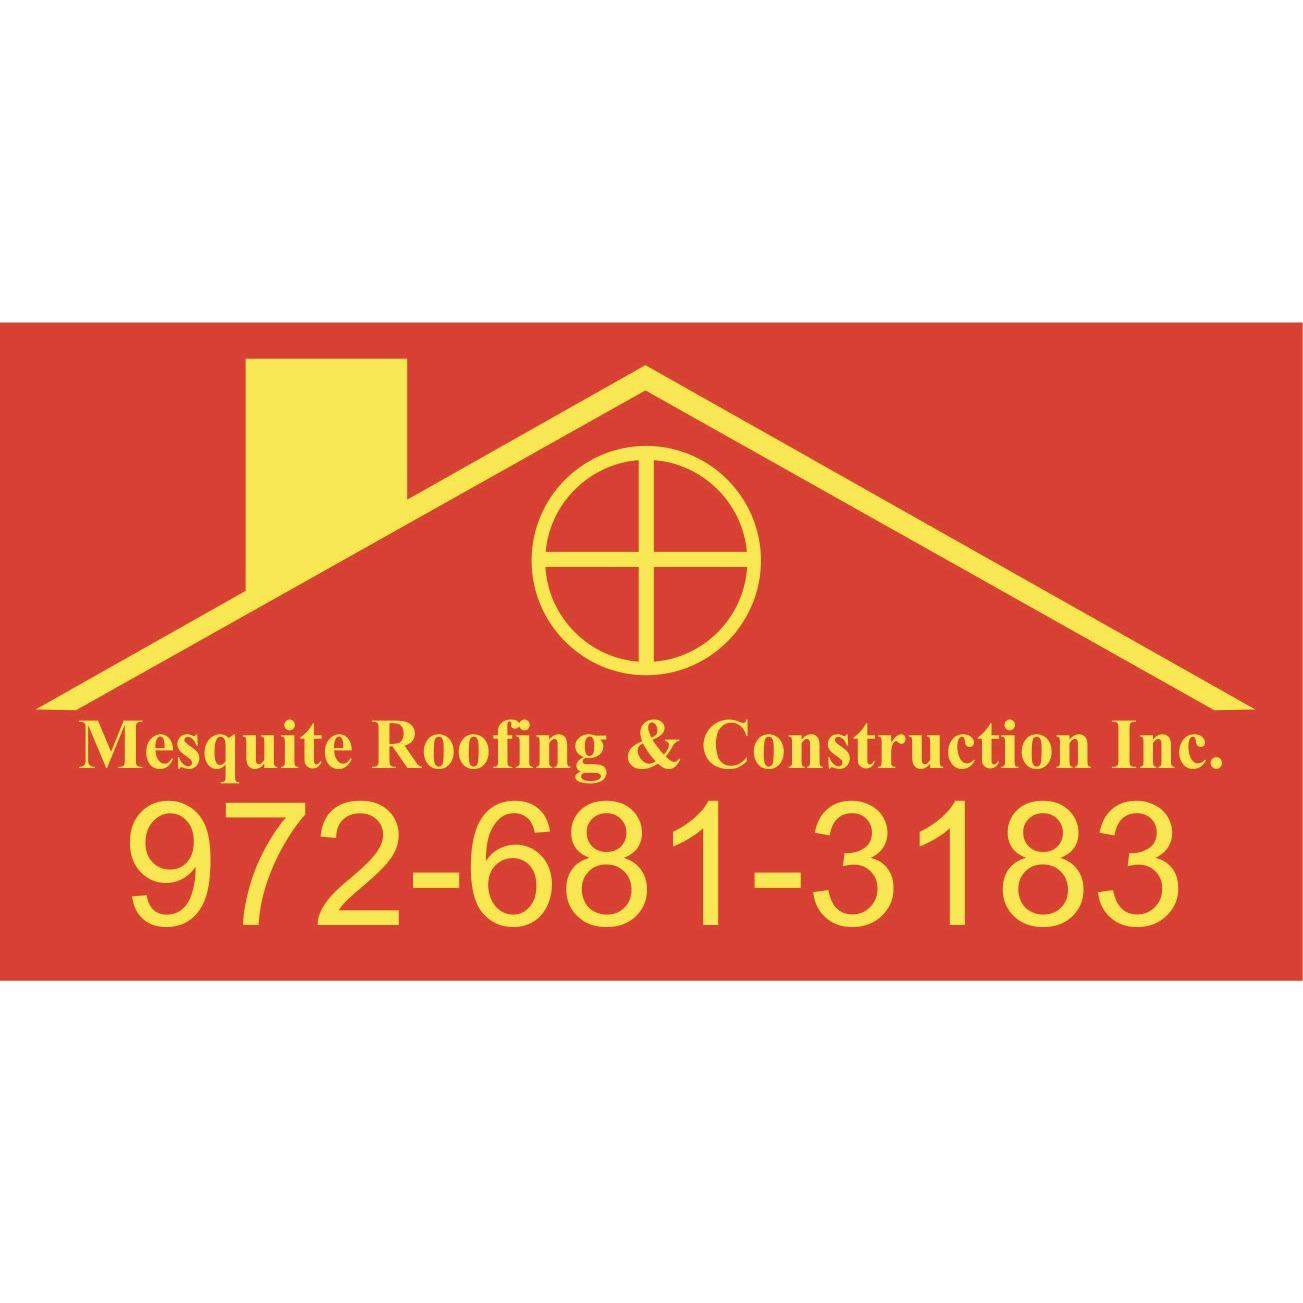 Mesquite Roofing & Construction Inc.